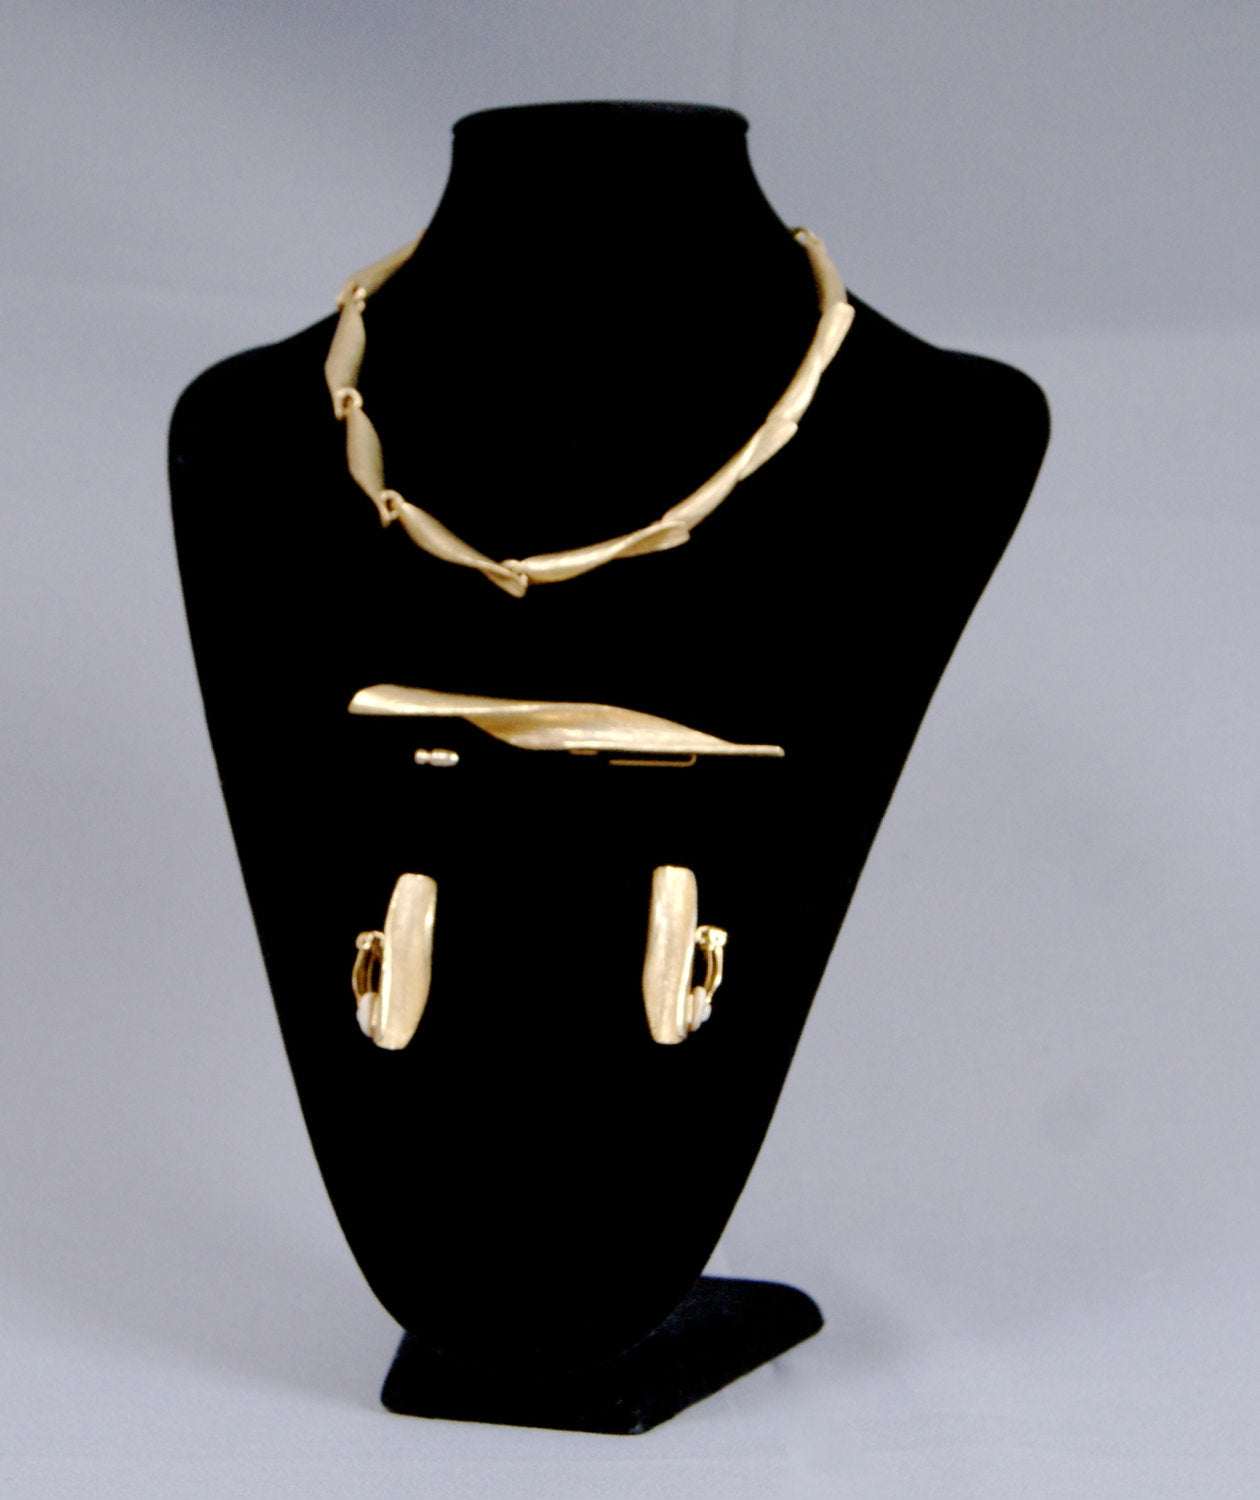 DELPHINE NARDIN Paris Vintage 70s Gilt Jewellery 4 piece Set Necklace,Earrings And Brooch Pin